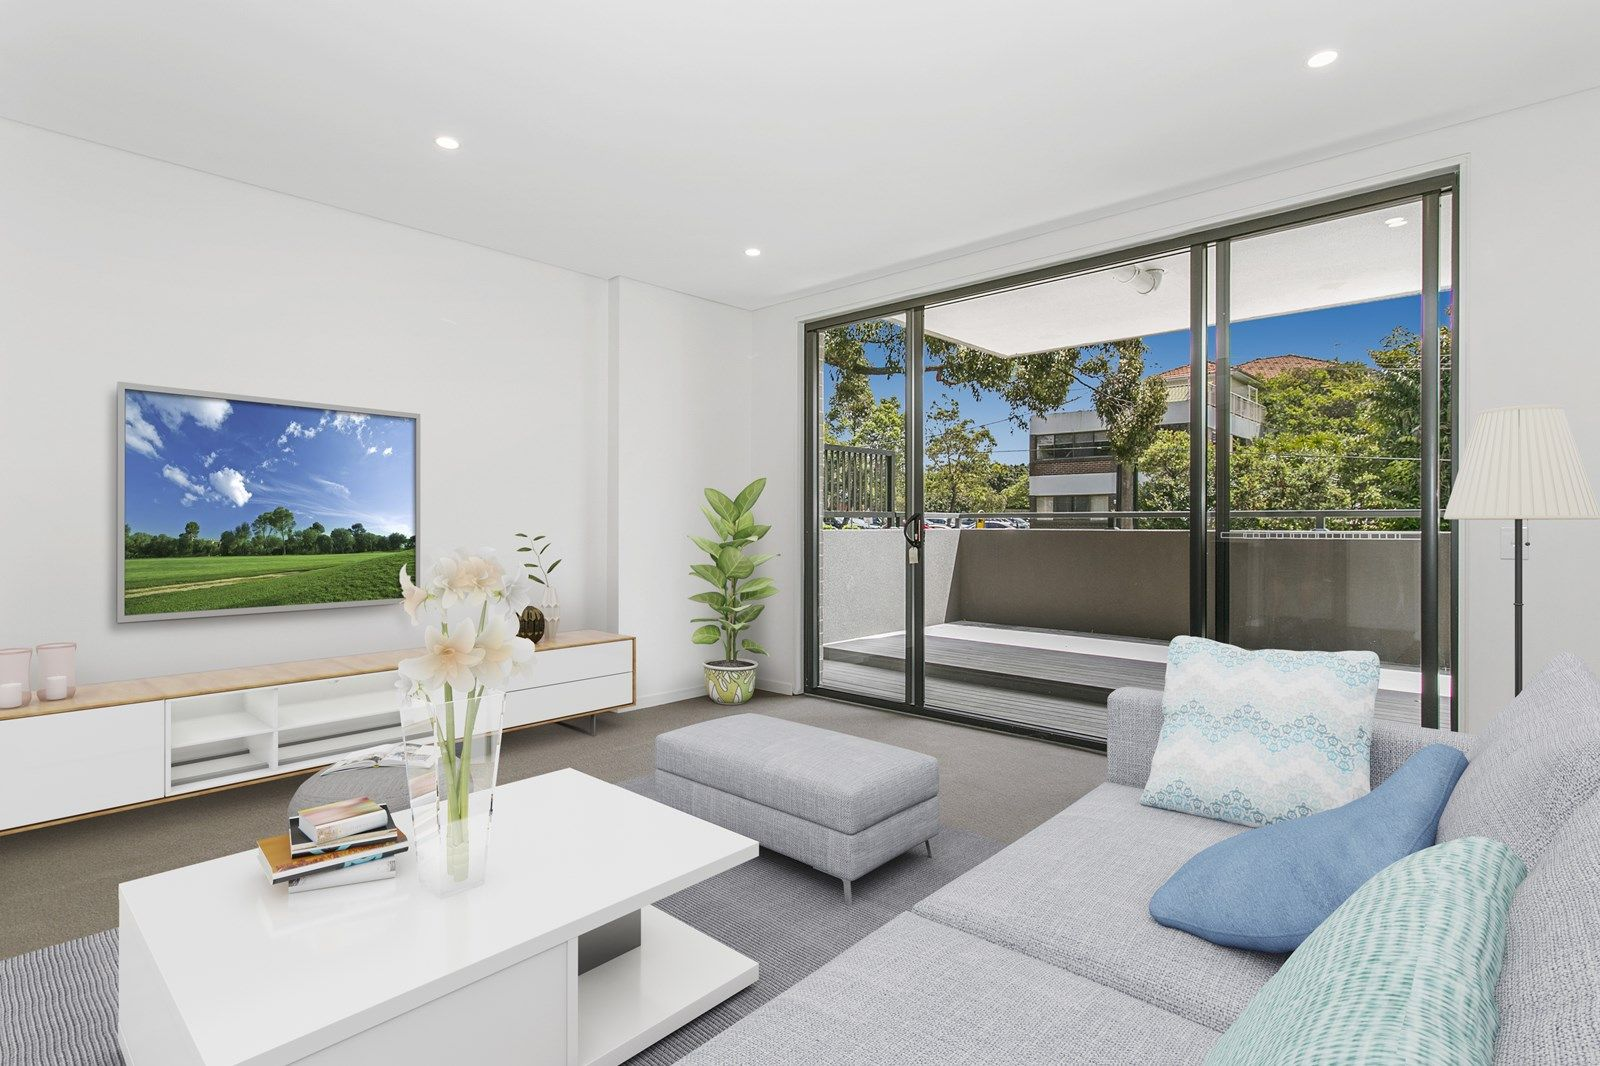 108/341-343 Condamine Street, Manly Vale NSW 2093, Image 0